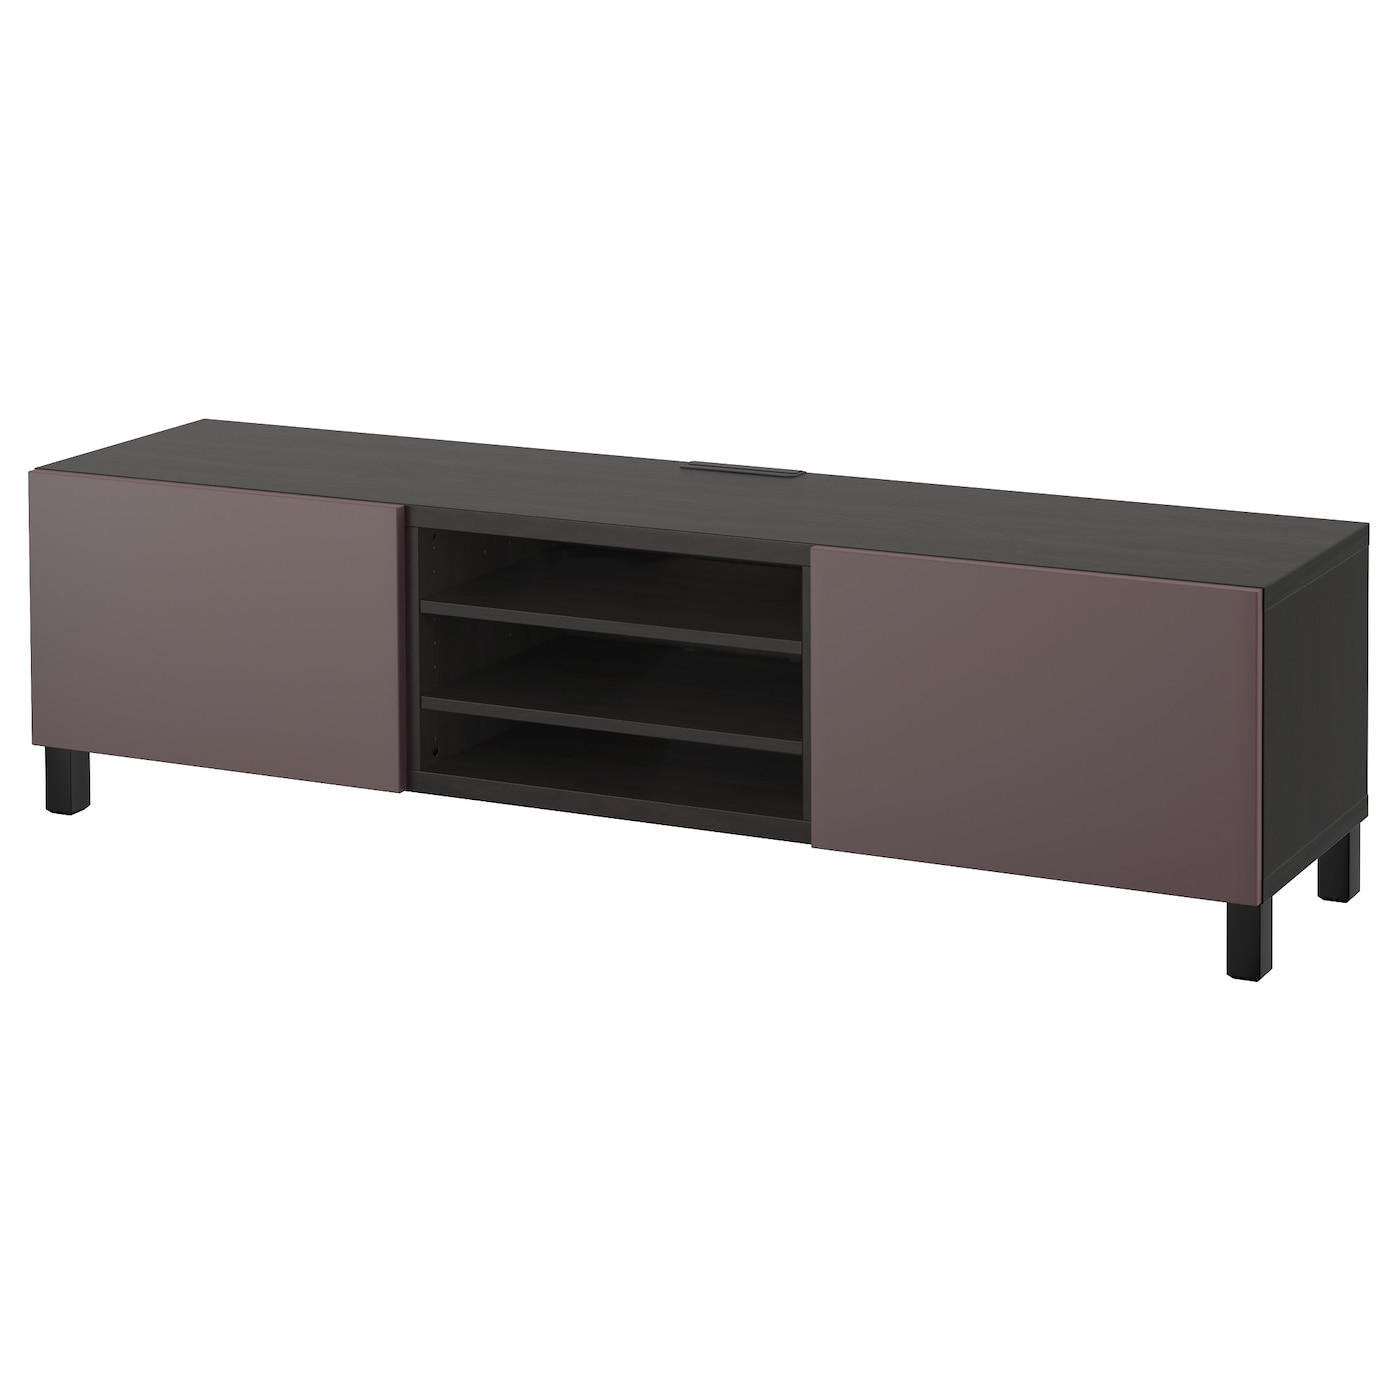 best banc tv avec tiroirs brun noir valviken brun fonc 180x40x48 cm ikea. Black Bedroom Furniture Sets. Home Design Ideas